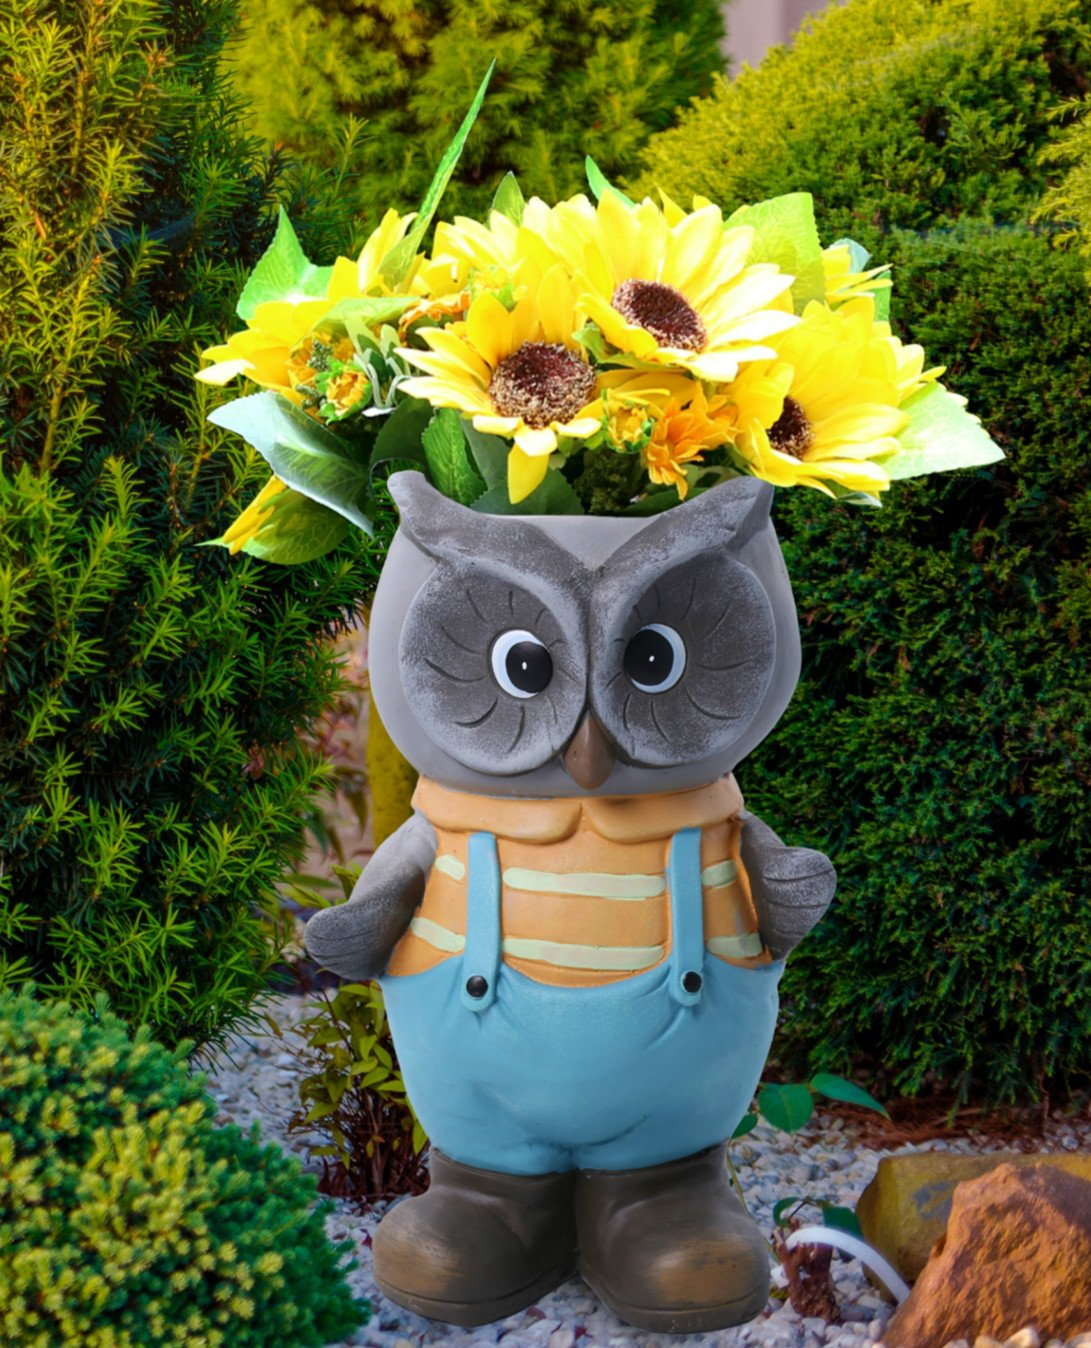 Owl lawn ornaments - Amazon Com Owl Decor Flower Pots Garden Statues 15 Inch Tall Head Planter Indoor Outdoor Decorations 2017 Patio Lawn Garden